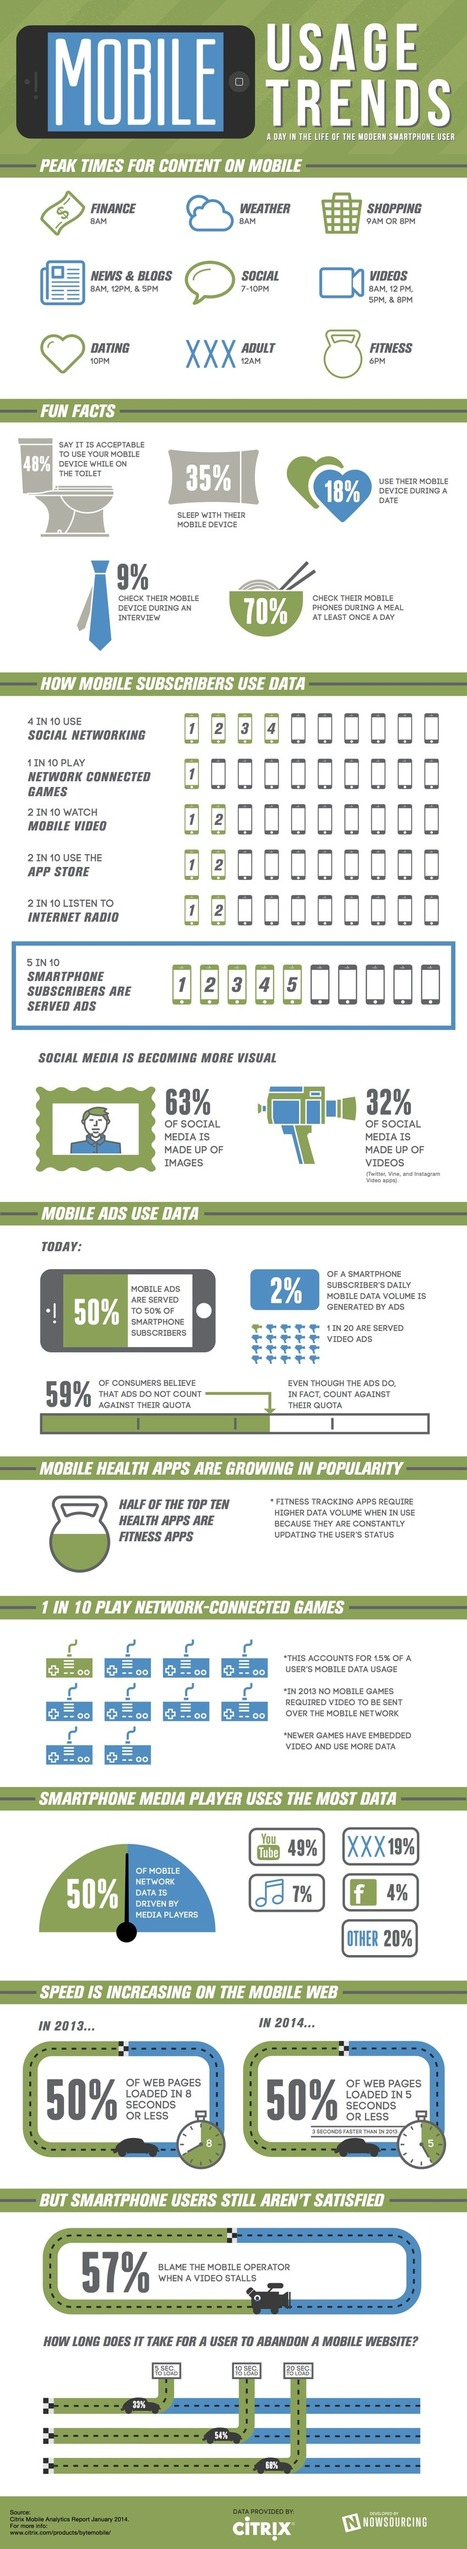 A Day in the Life of the Modern Smartphone User [Infographic] | Socially | Scoop.it